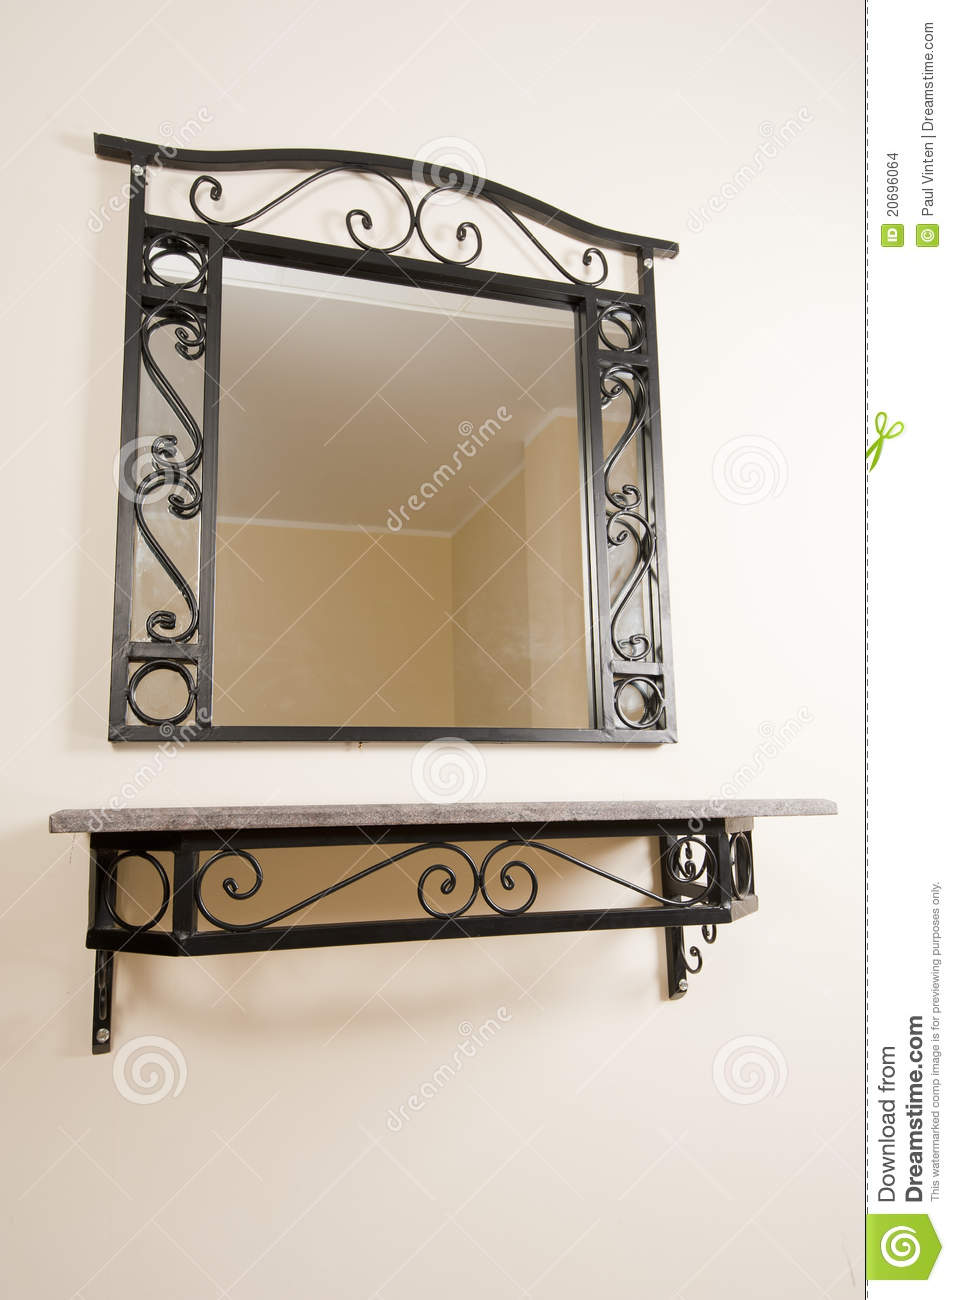 Mirror and shelf on a wall stock photo image of mirror 20696064 royalty free stock photo download mirror and shelf on a wall amipublicfo Image collections